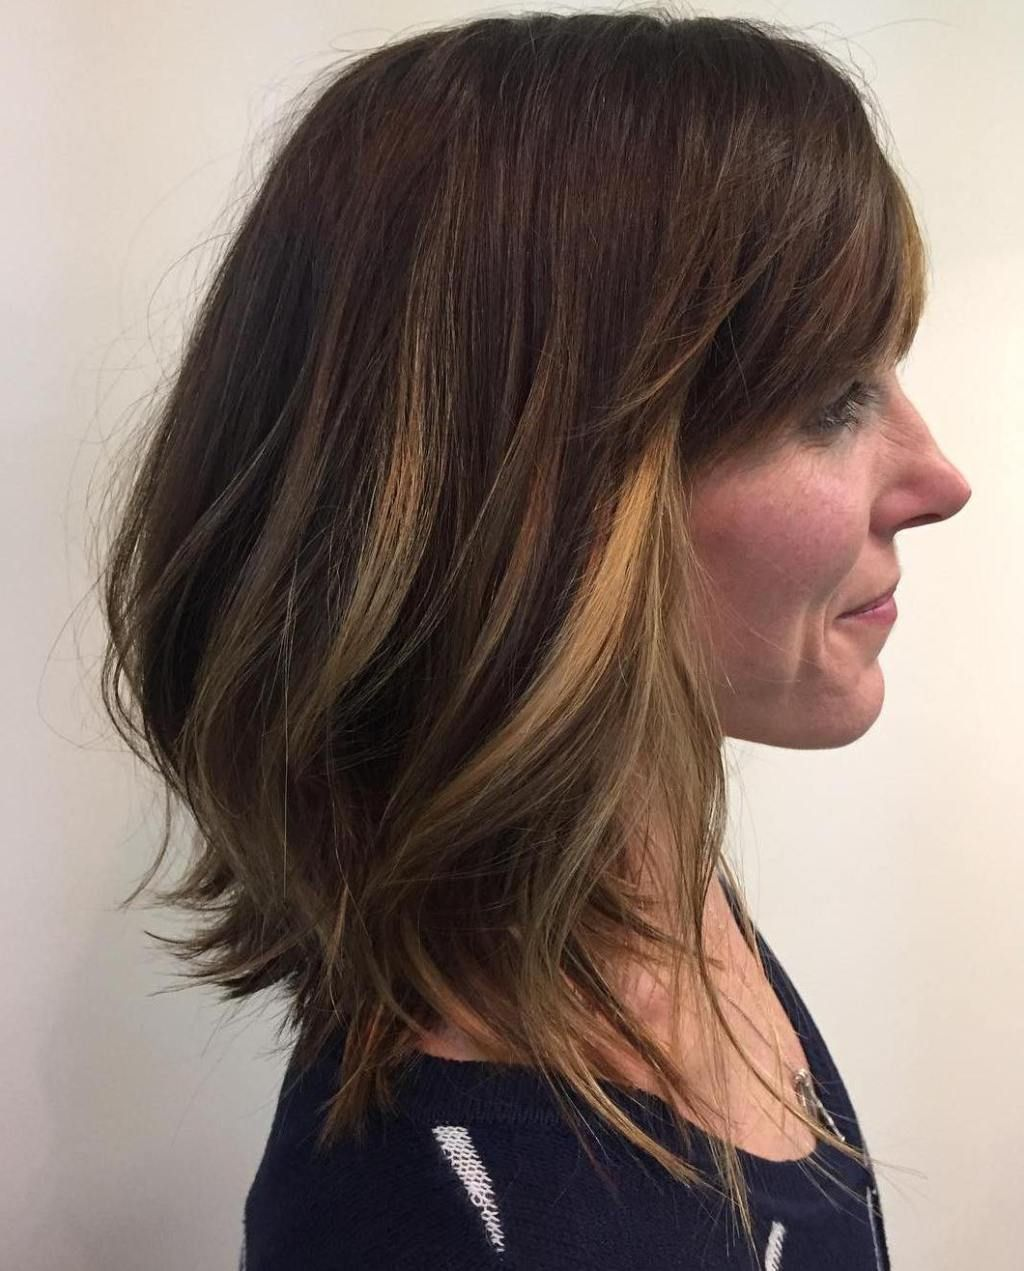 classy and simple short hairstyles for women over long brown